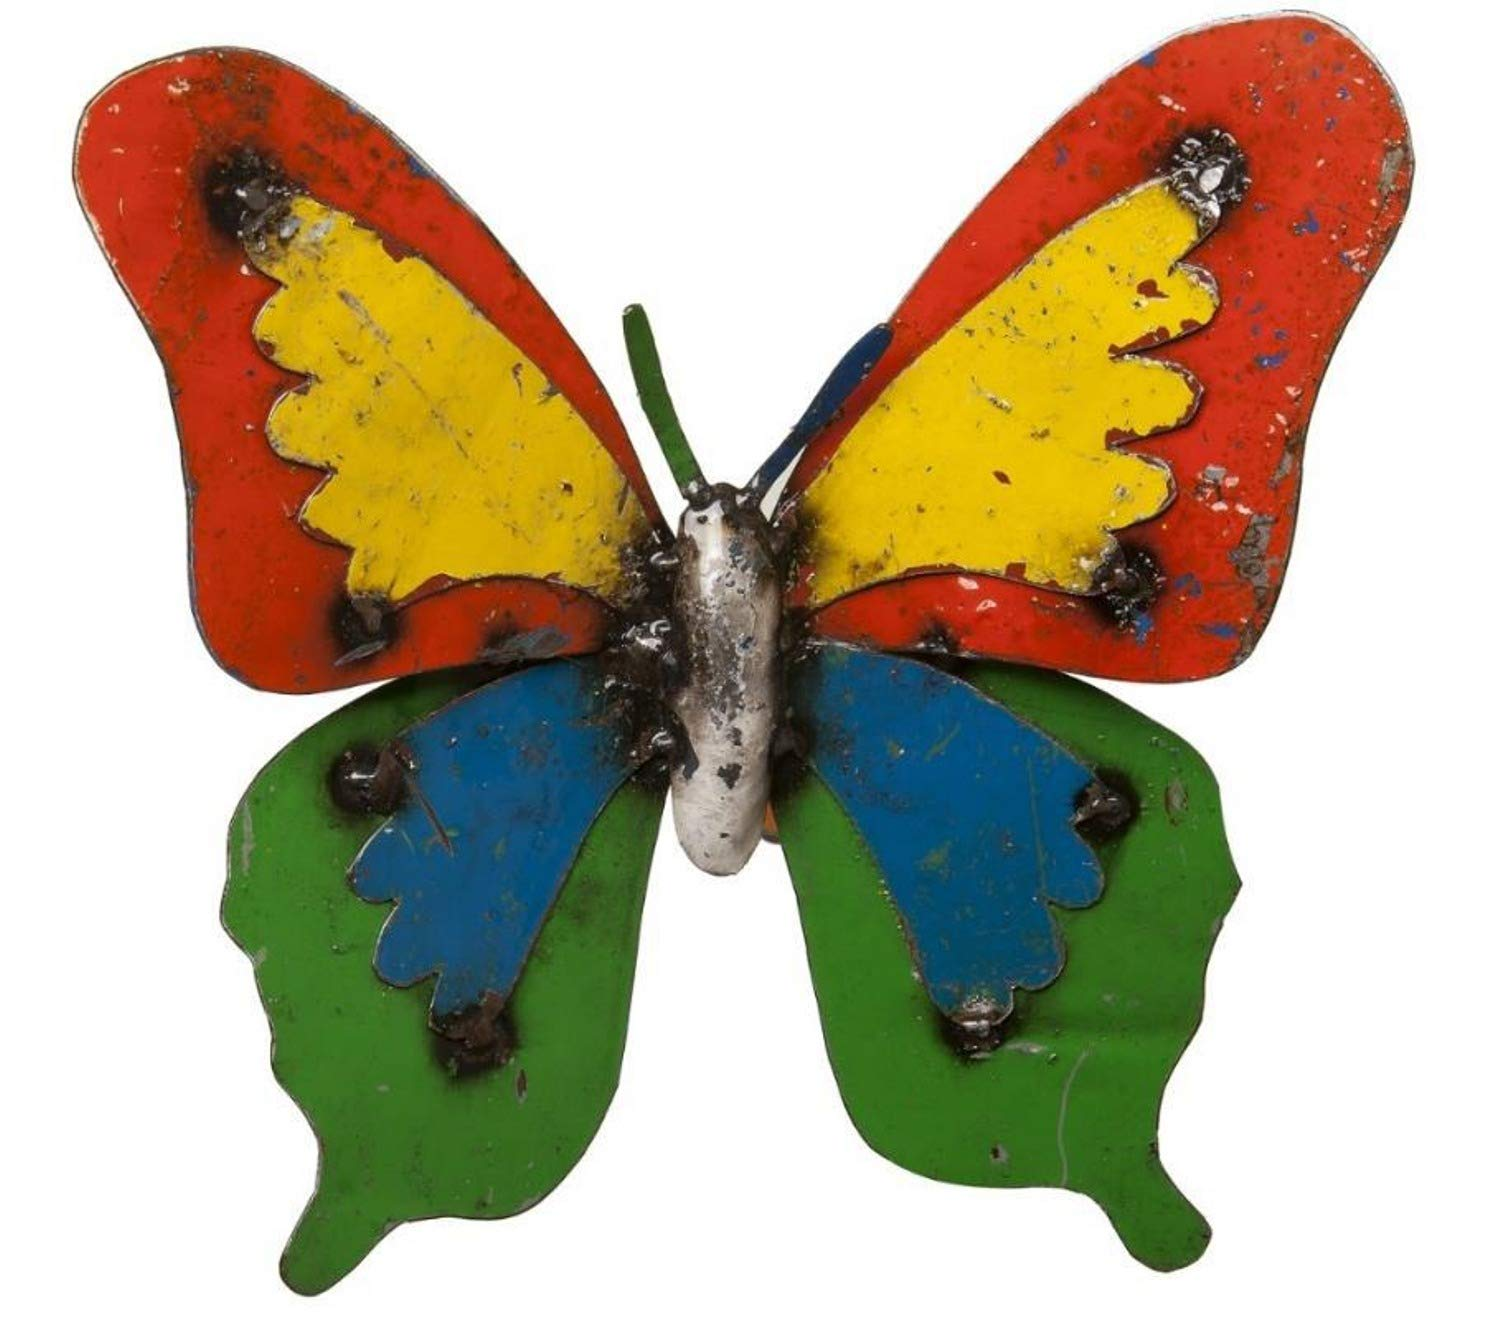 Upcycled Emporium Cheerful Ulysses Butterfly Wall Art Sculpture for Home, Garden, and Outdoor Patio Décor, Handcrafted from Recycled Metals